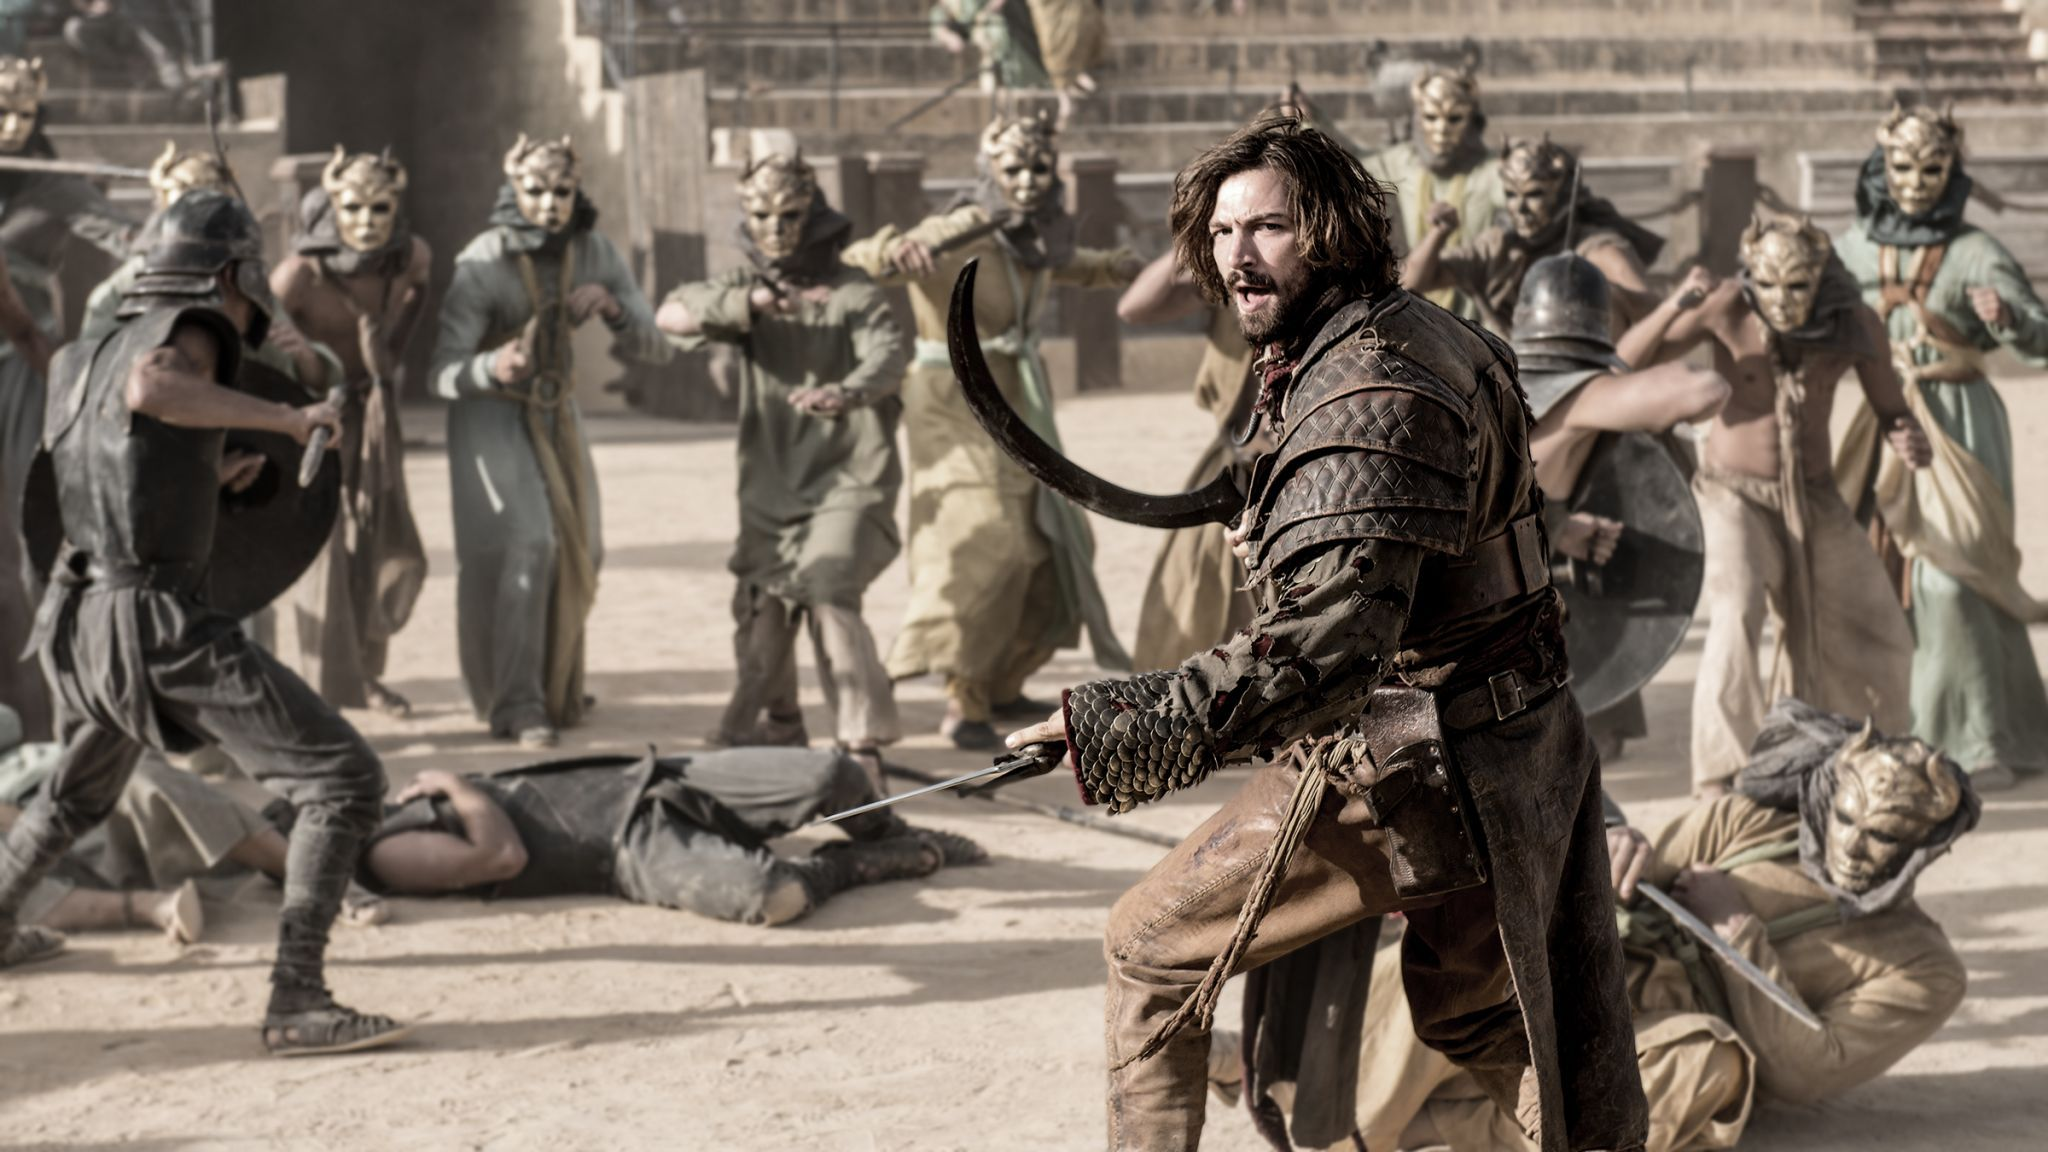 The Dance Of Dragons Season 5 Episode 9 Hbo game of